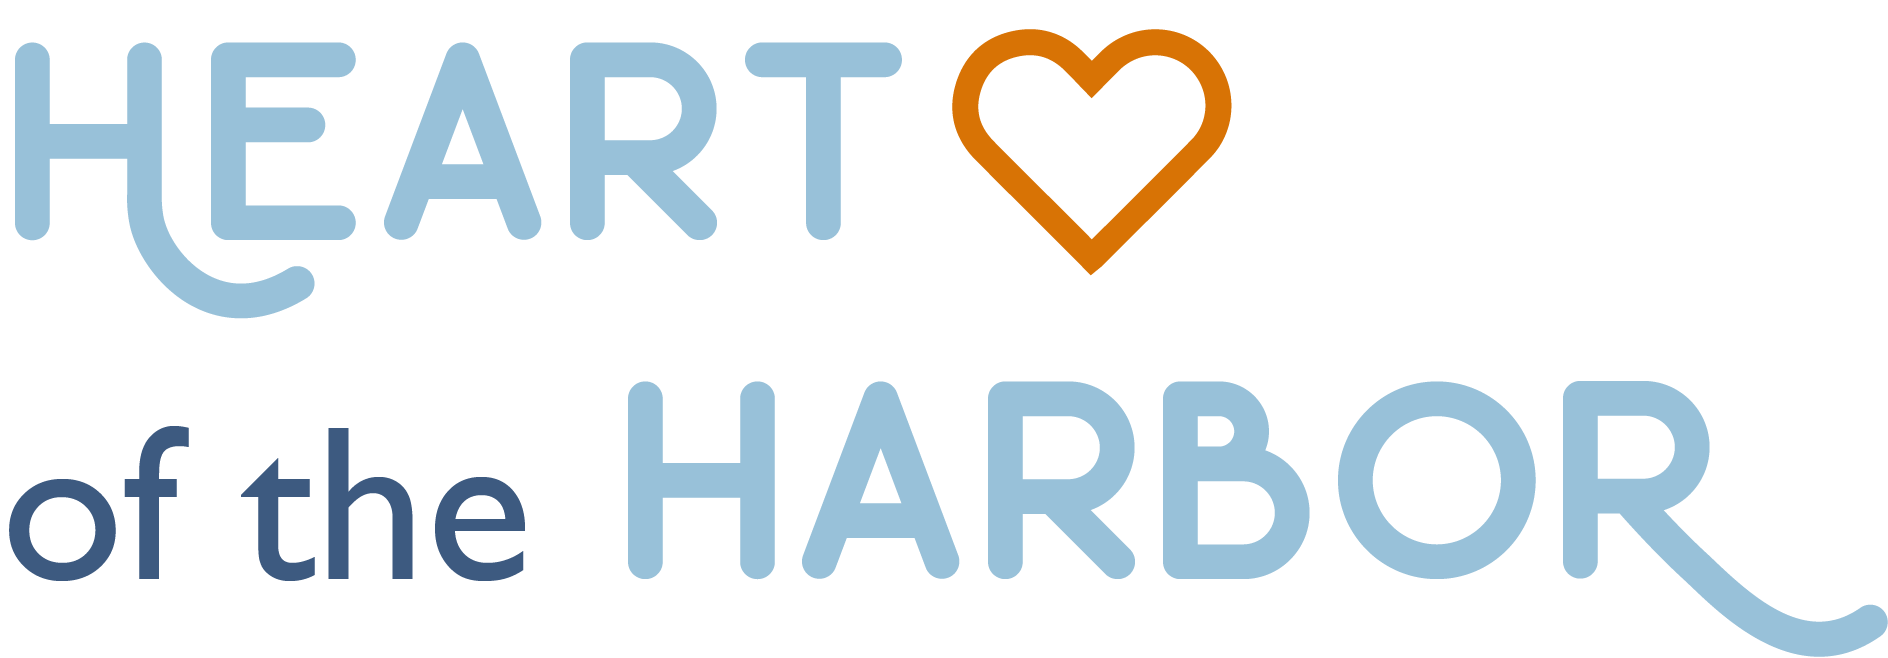 Heart of the Harbor